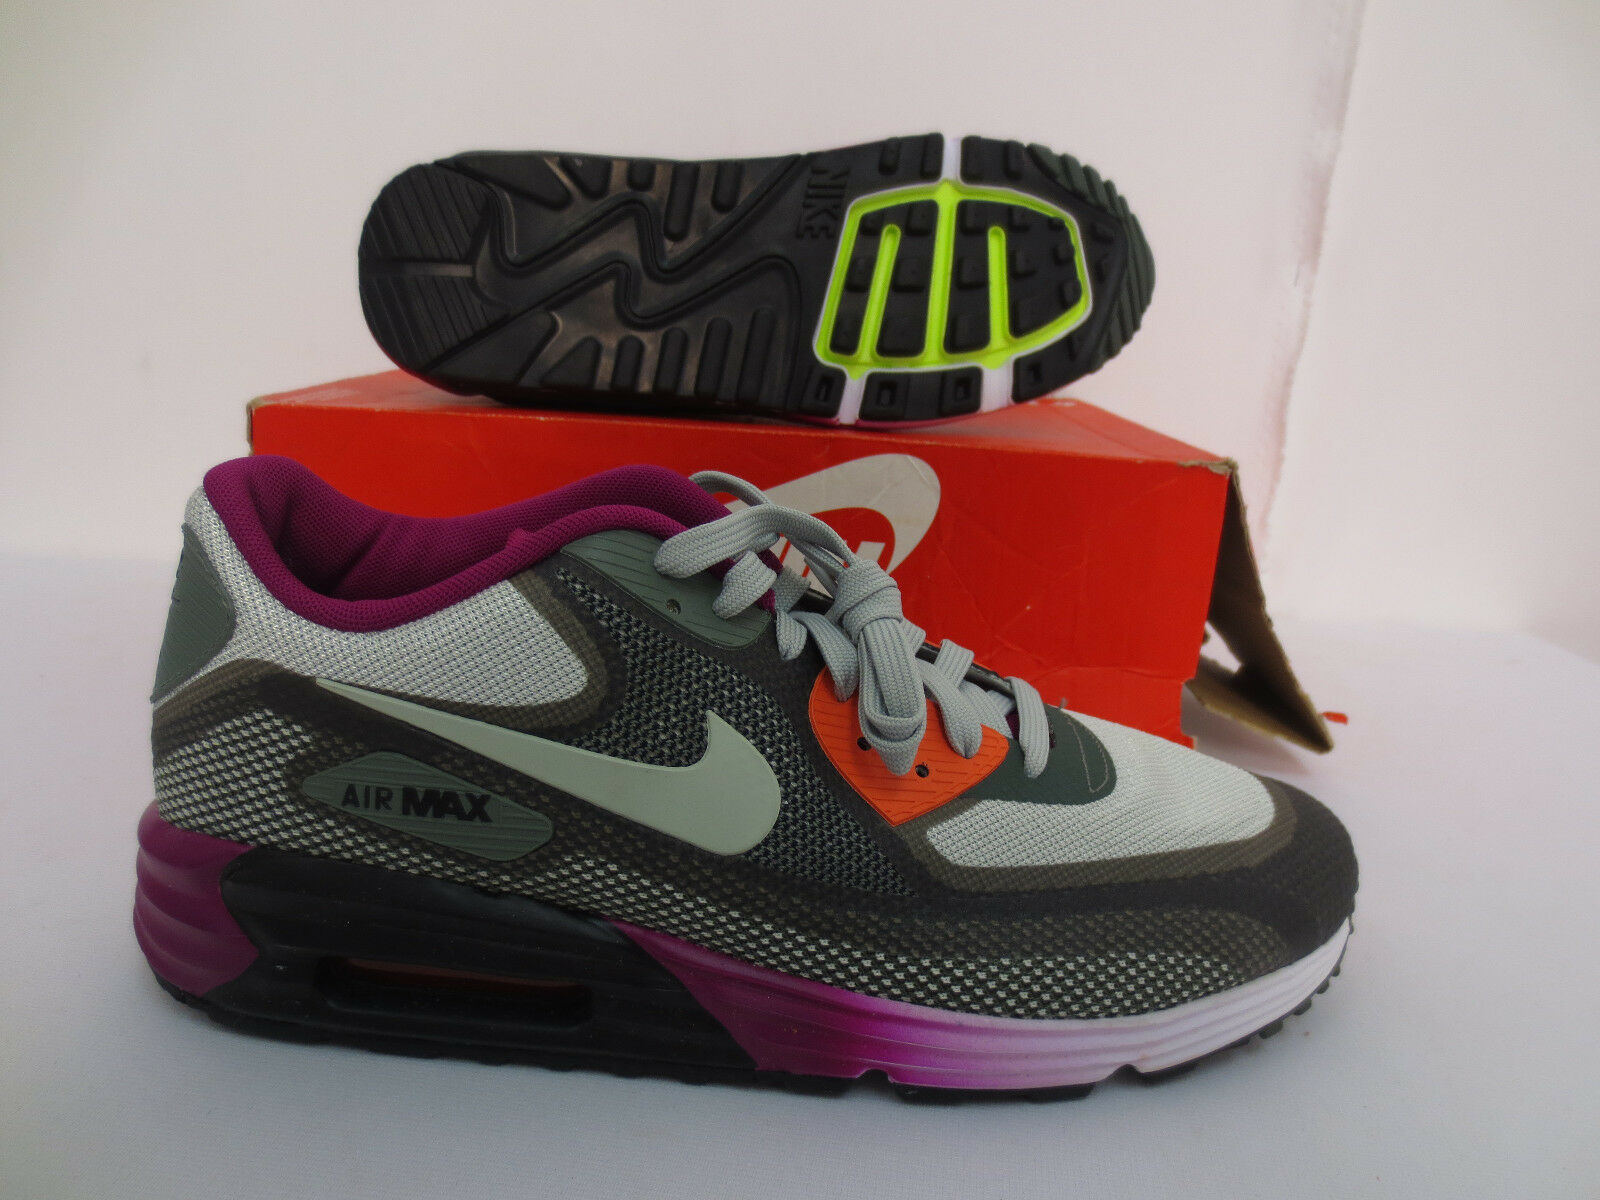 WMNS NIKE AIR MAX LUNAR90 C3.0 SIZE 12 RUNNING WORKOUT SHOES GYM 631762 003 NEW